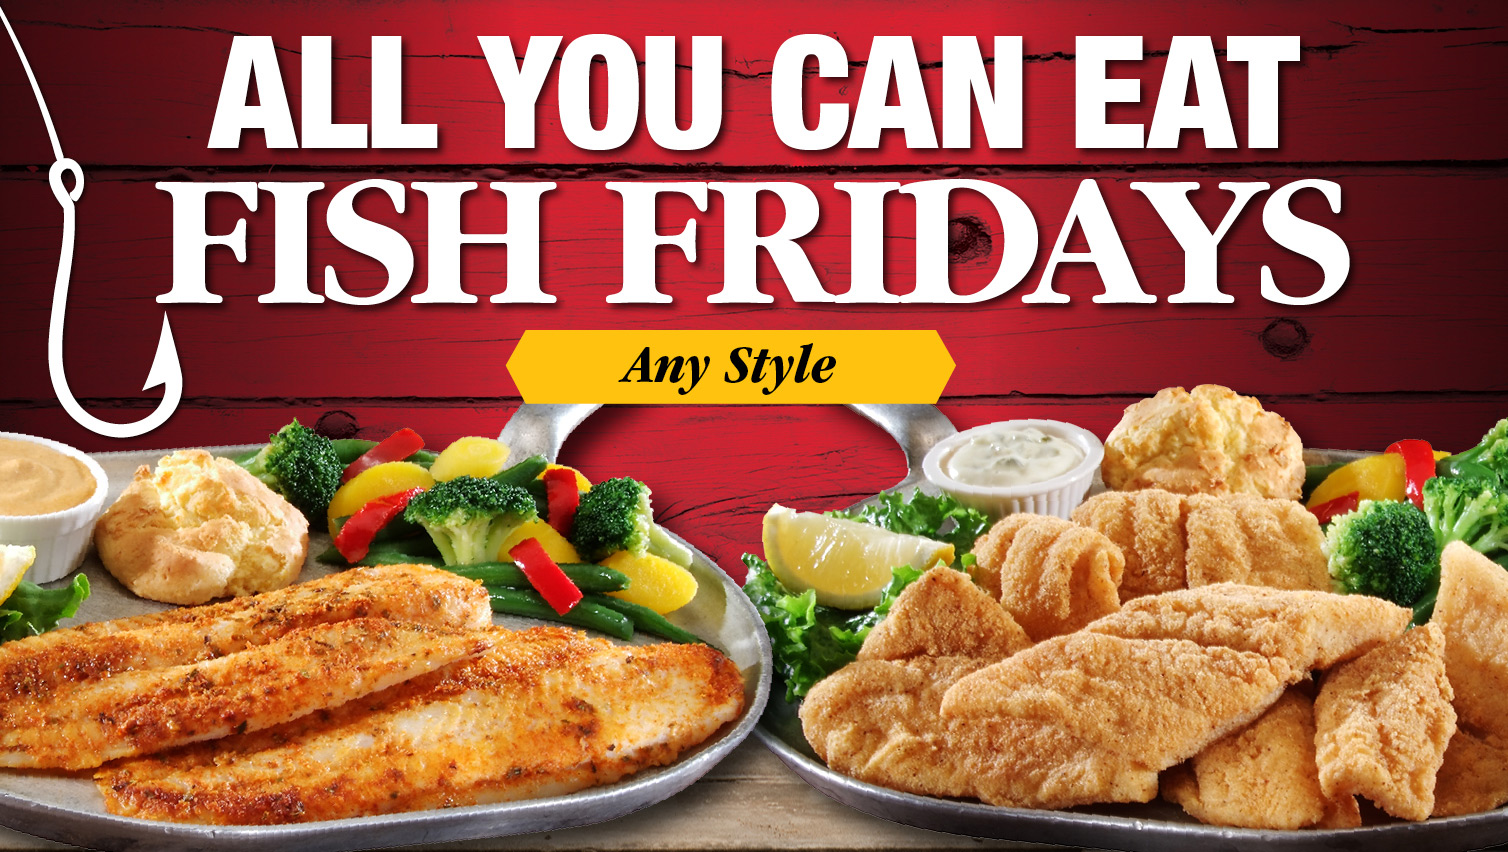 Iron skillet travel centers of america for All you can eat fish fry